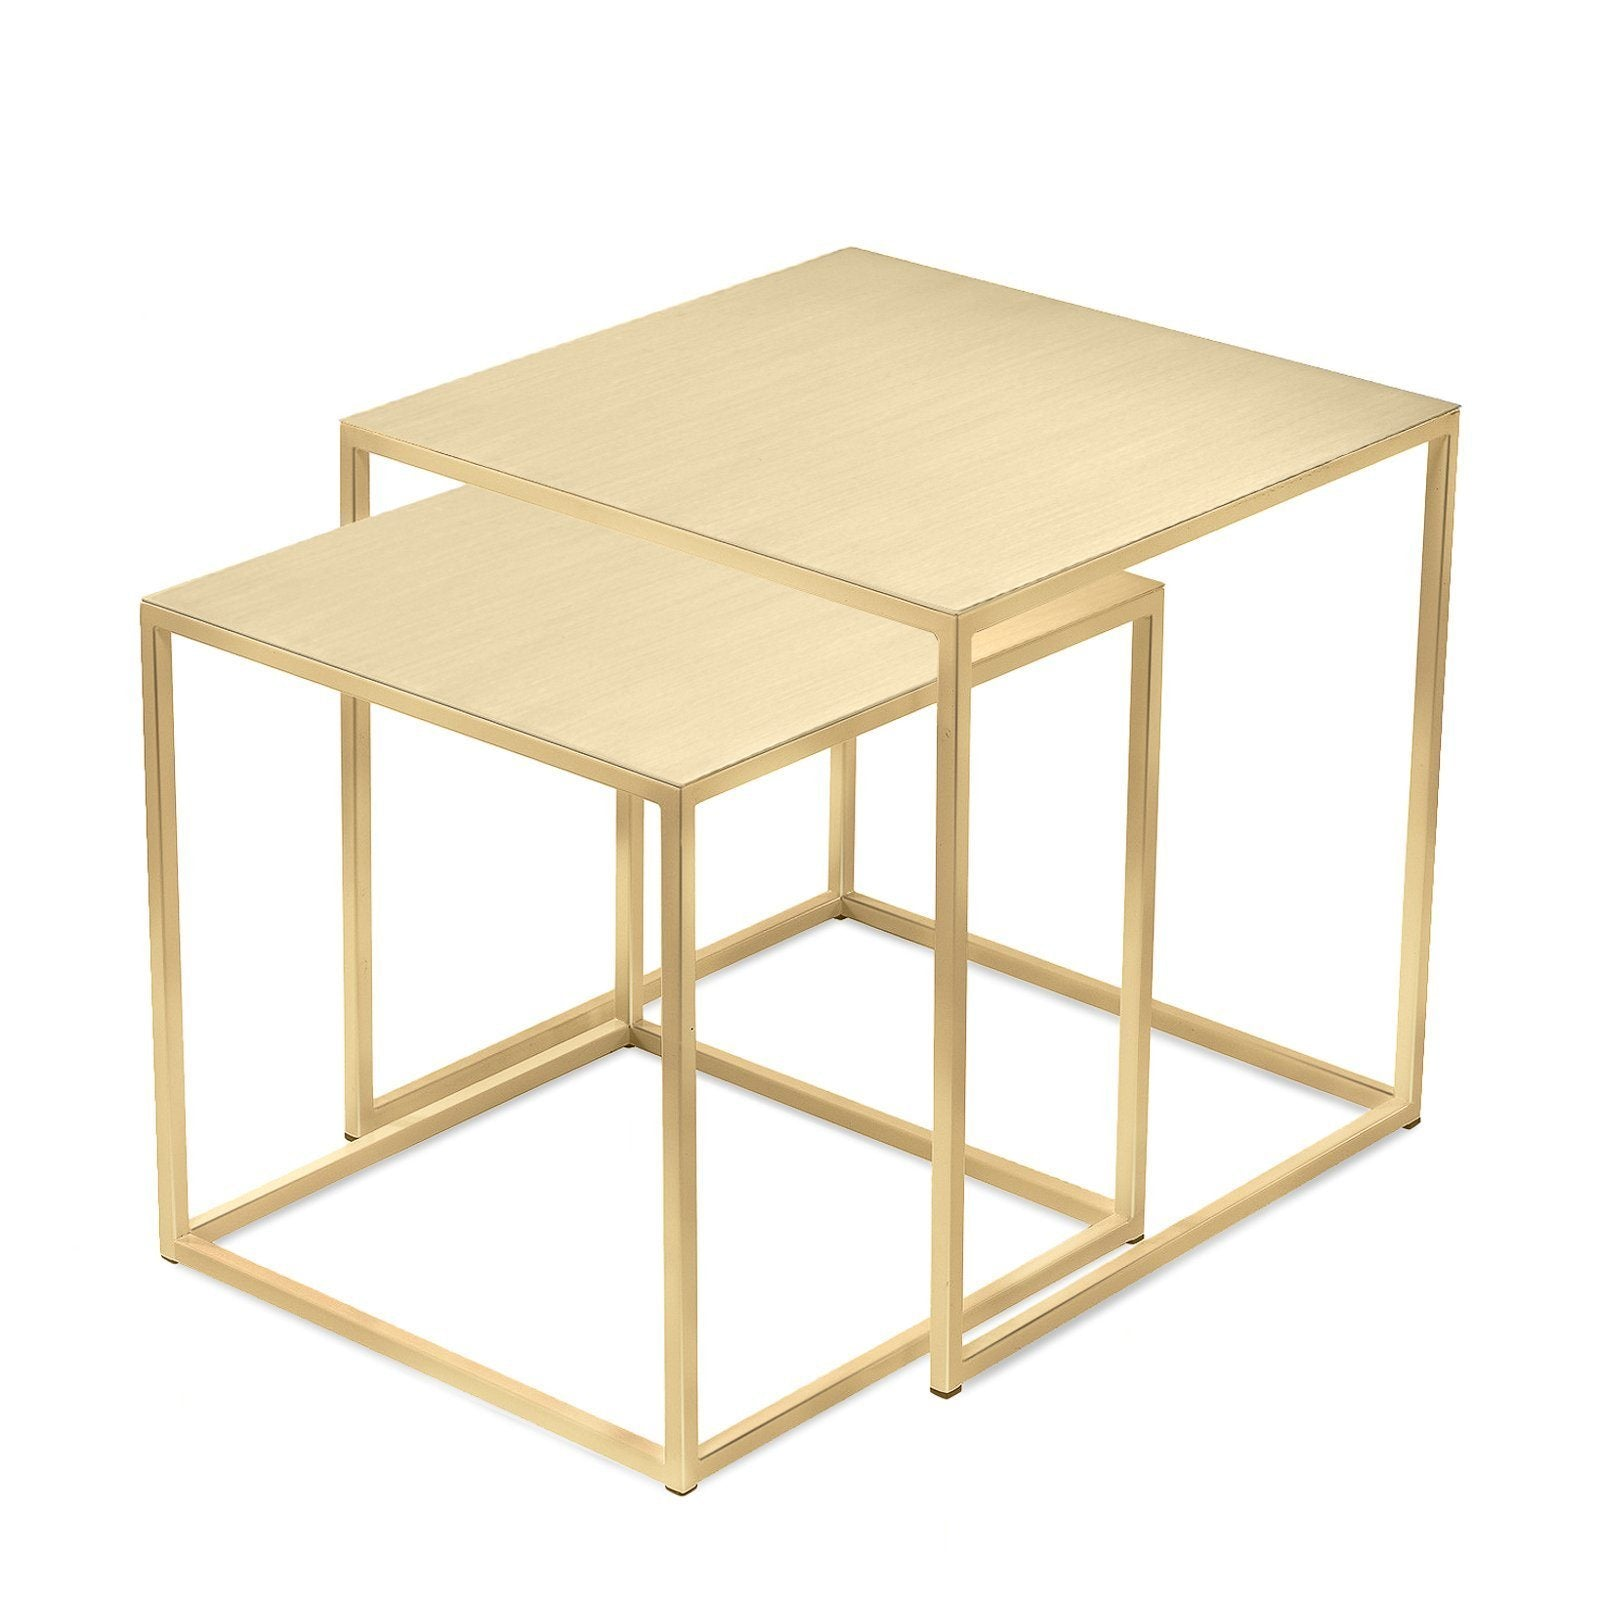 3ea01b8a1f161 ... Tables   Side Table - Frisco Brass Nesting Tables By Patrick Cain  Designs (Set Of ...